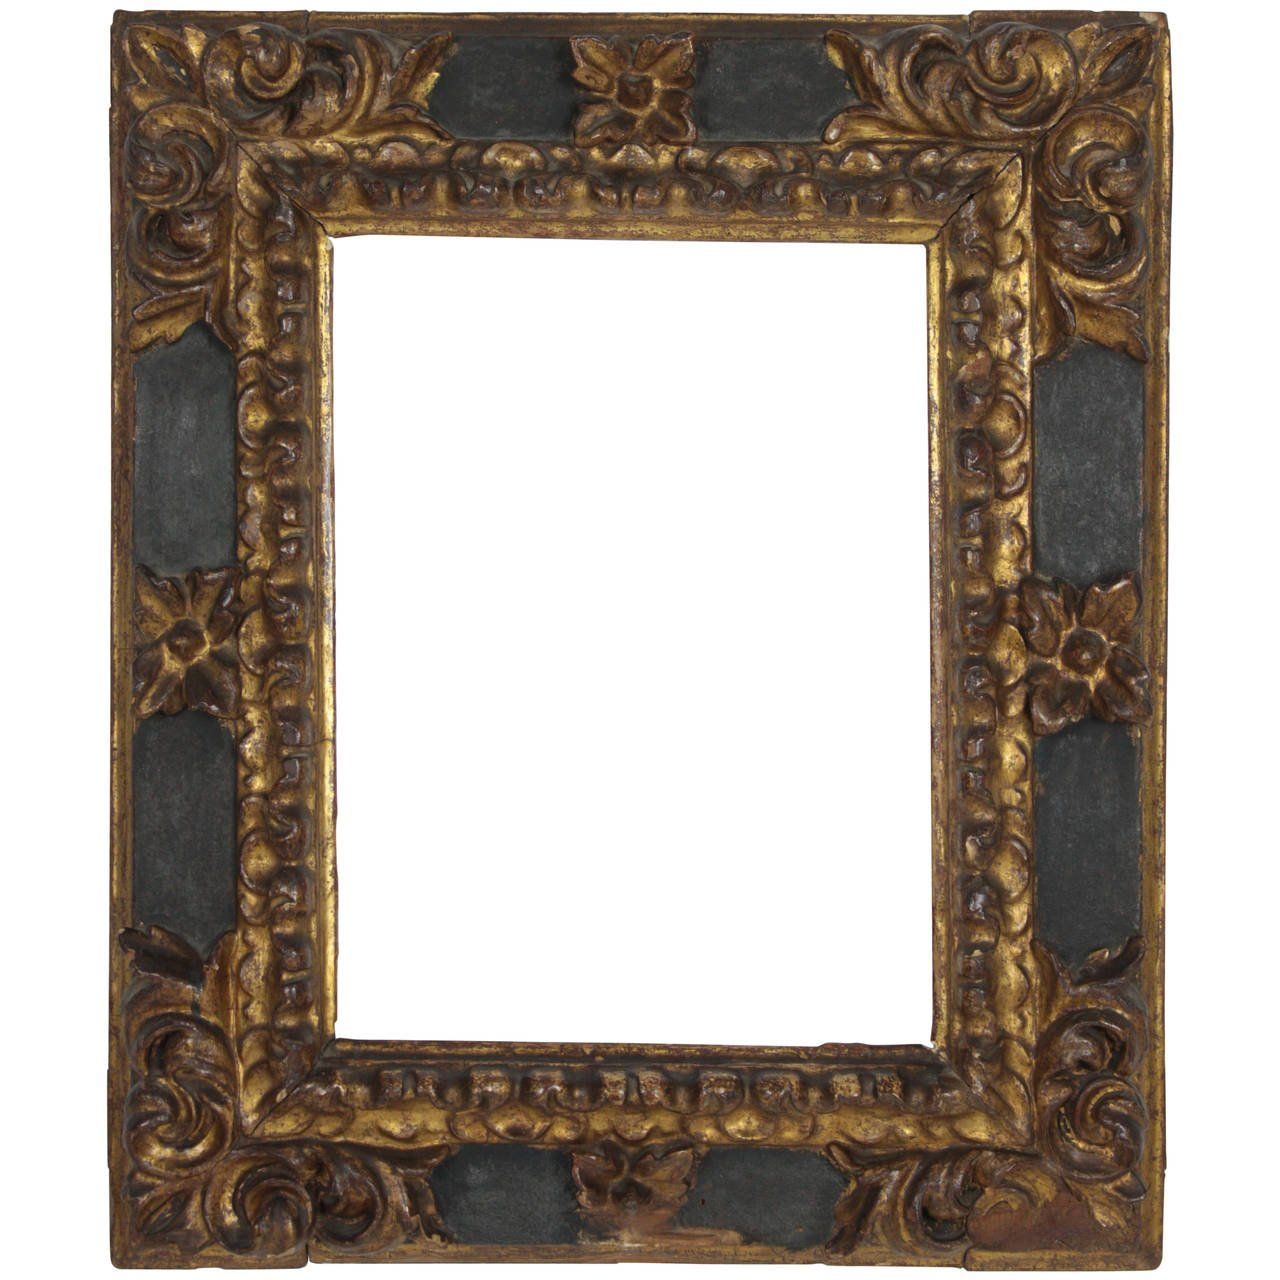 17th Century Spanish Baroque Carved Wood Gold Leaf Frame